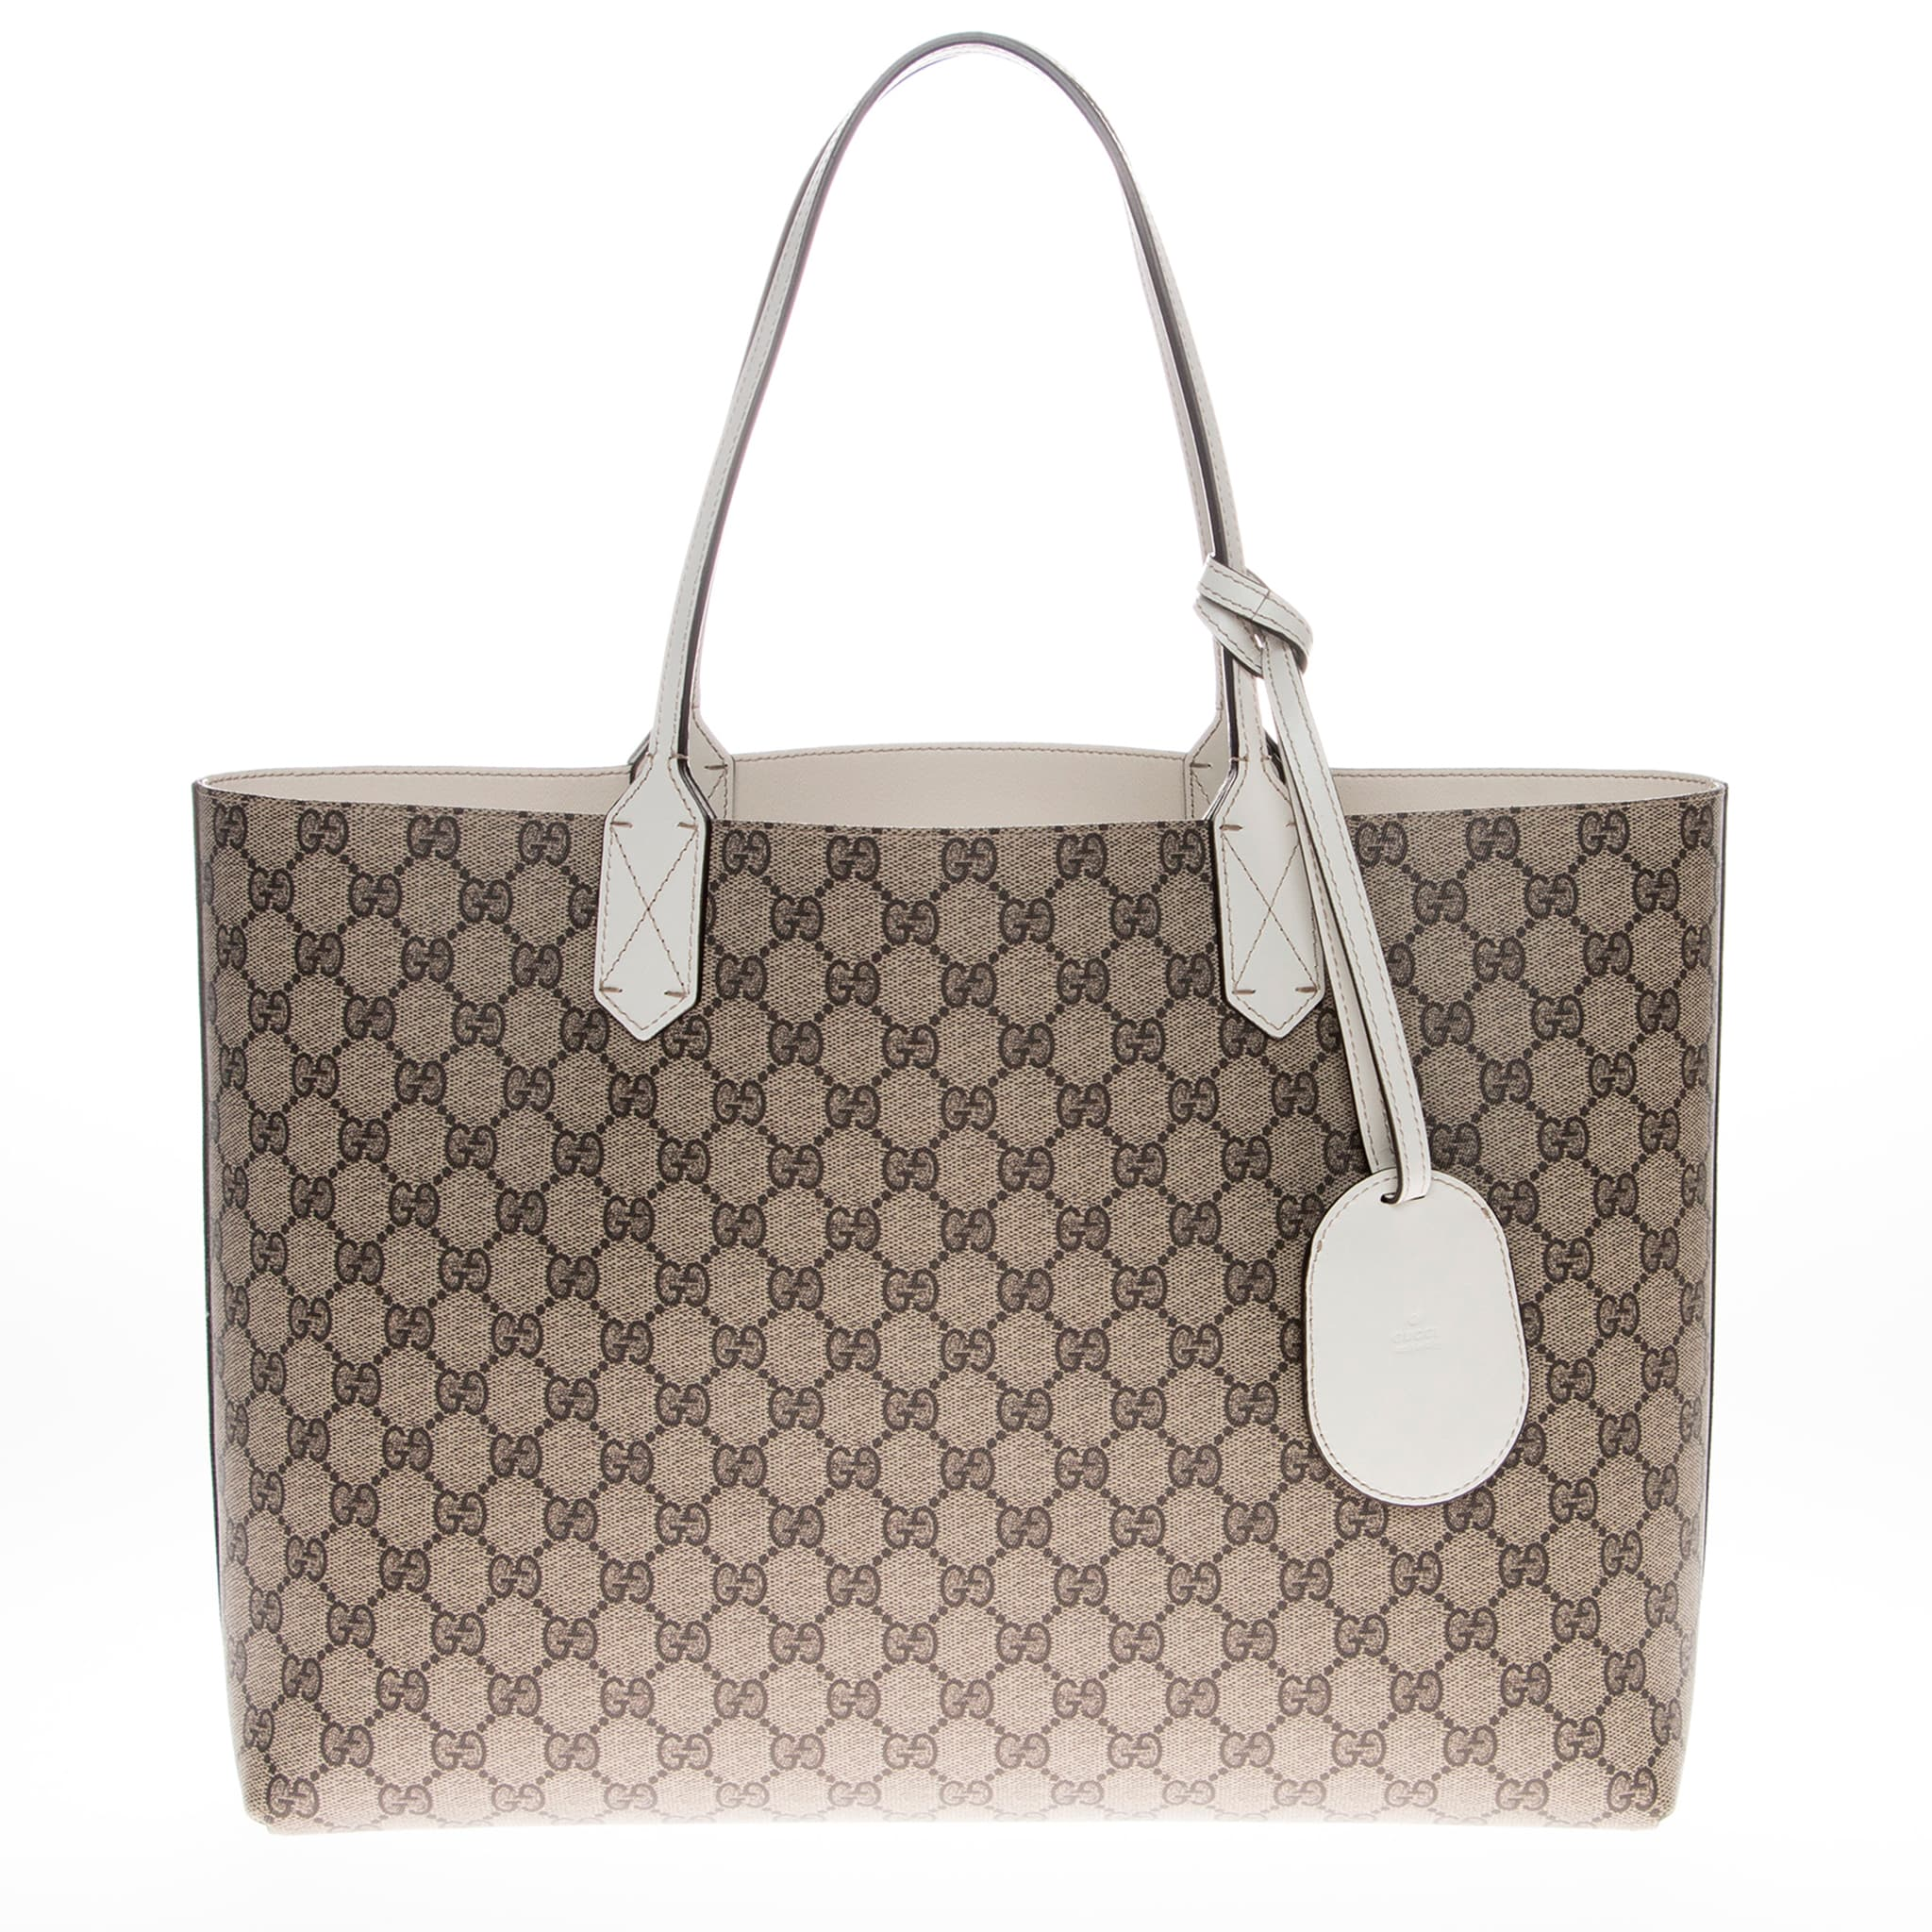 c521f44691c0 Shop Gucci Medium Reversible GG Leather Tote - Free Shipping Today -  Overstock.com - 10217998